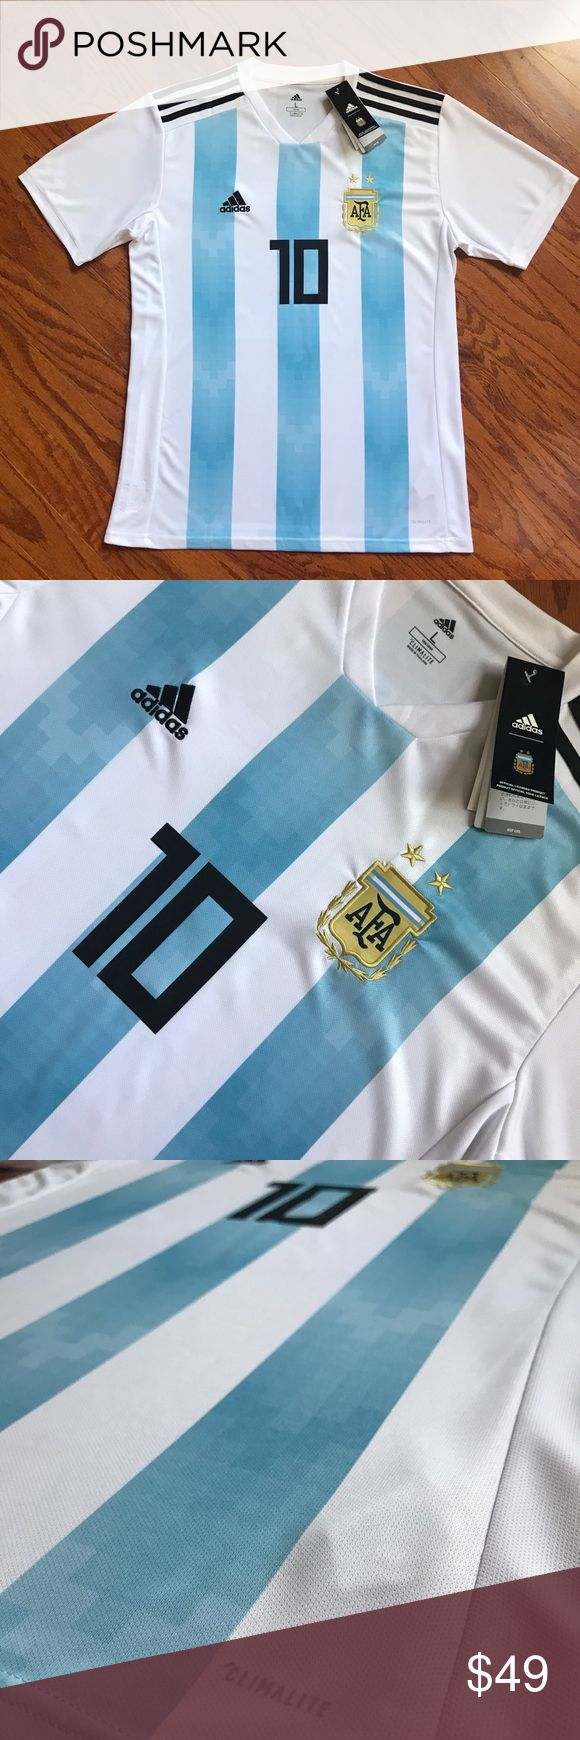 NWT World Cup 2018 Argentina Messi Jersey Brand New With Tags  World Cup 2018 Argentina Messi Adidas Jersey  Size Large adidas Shirts Tees - Short Sleeve